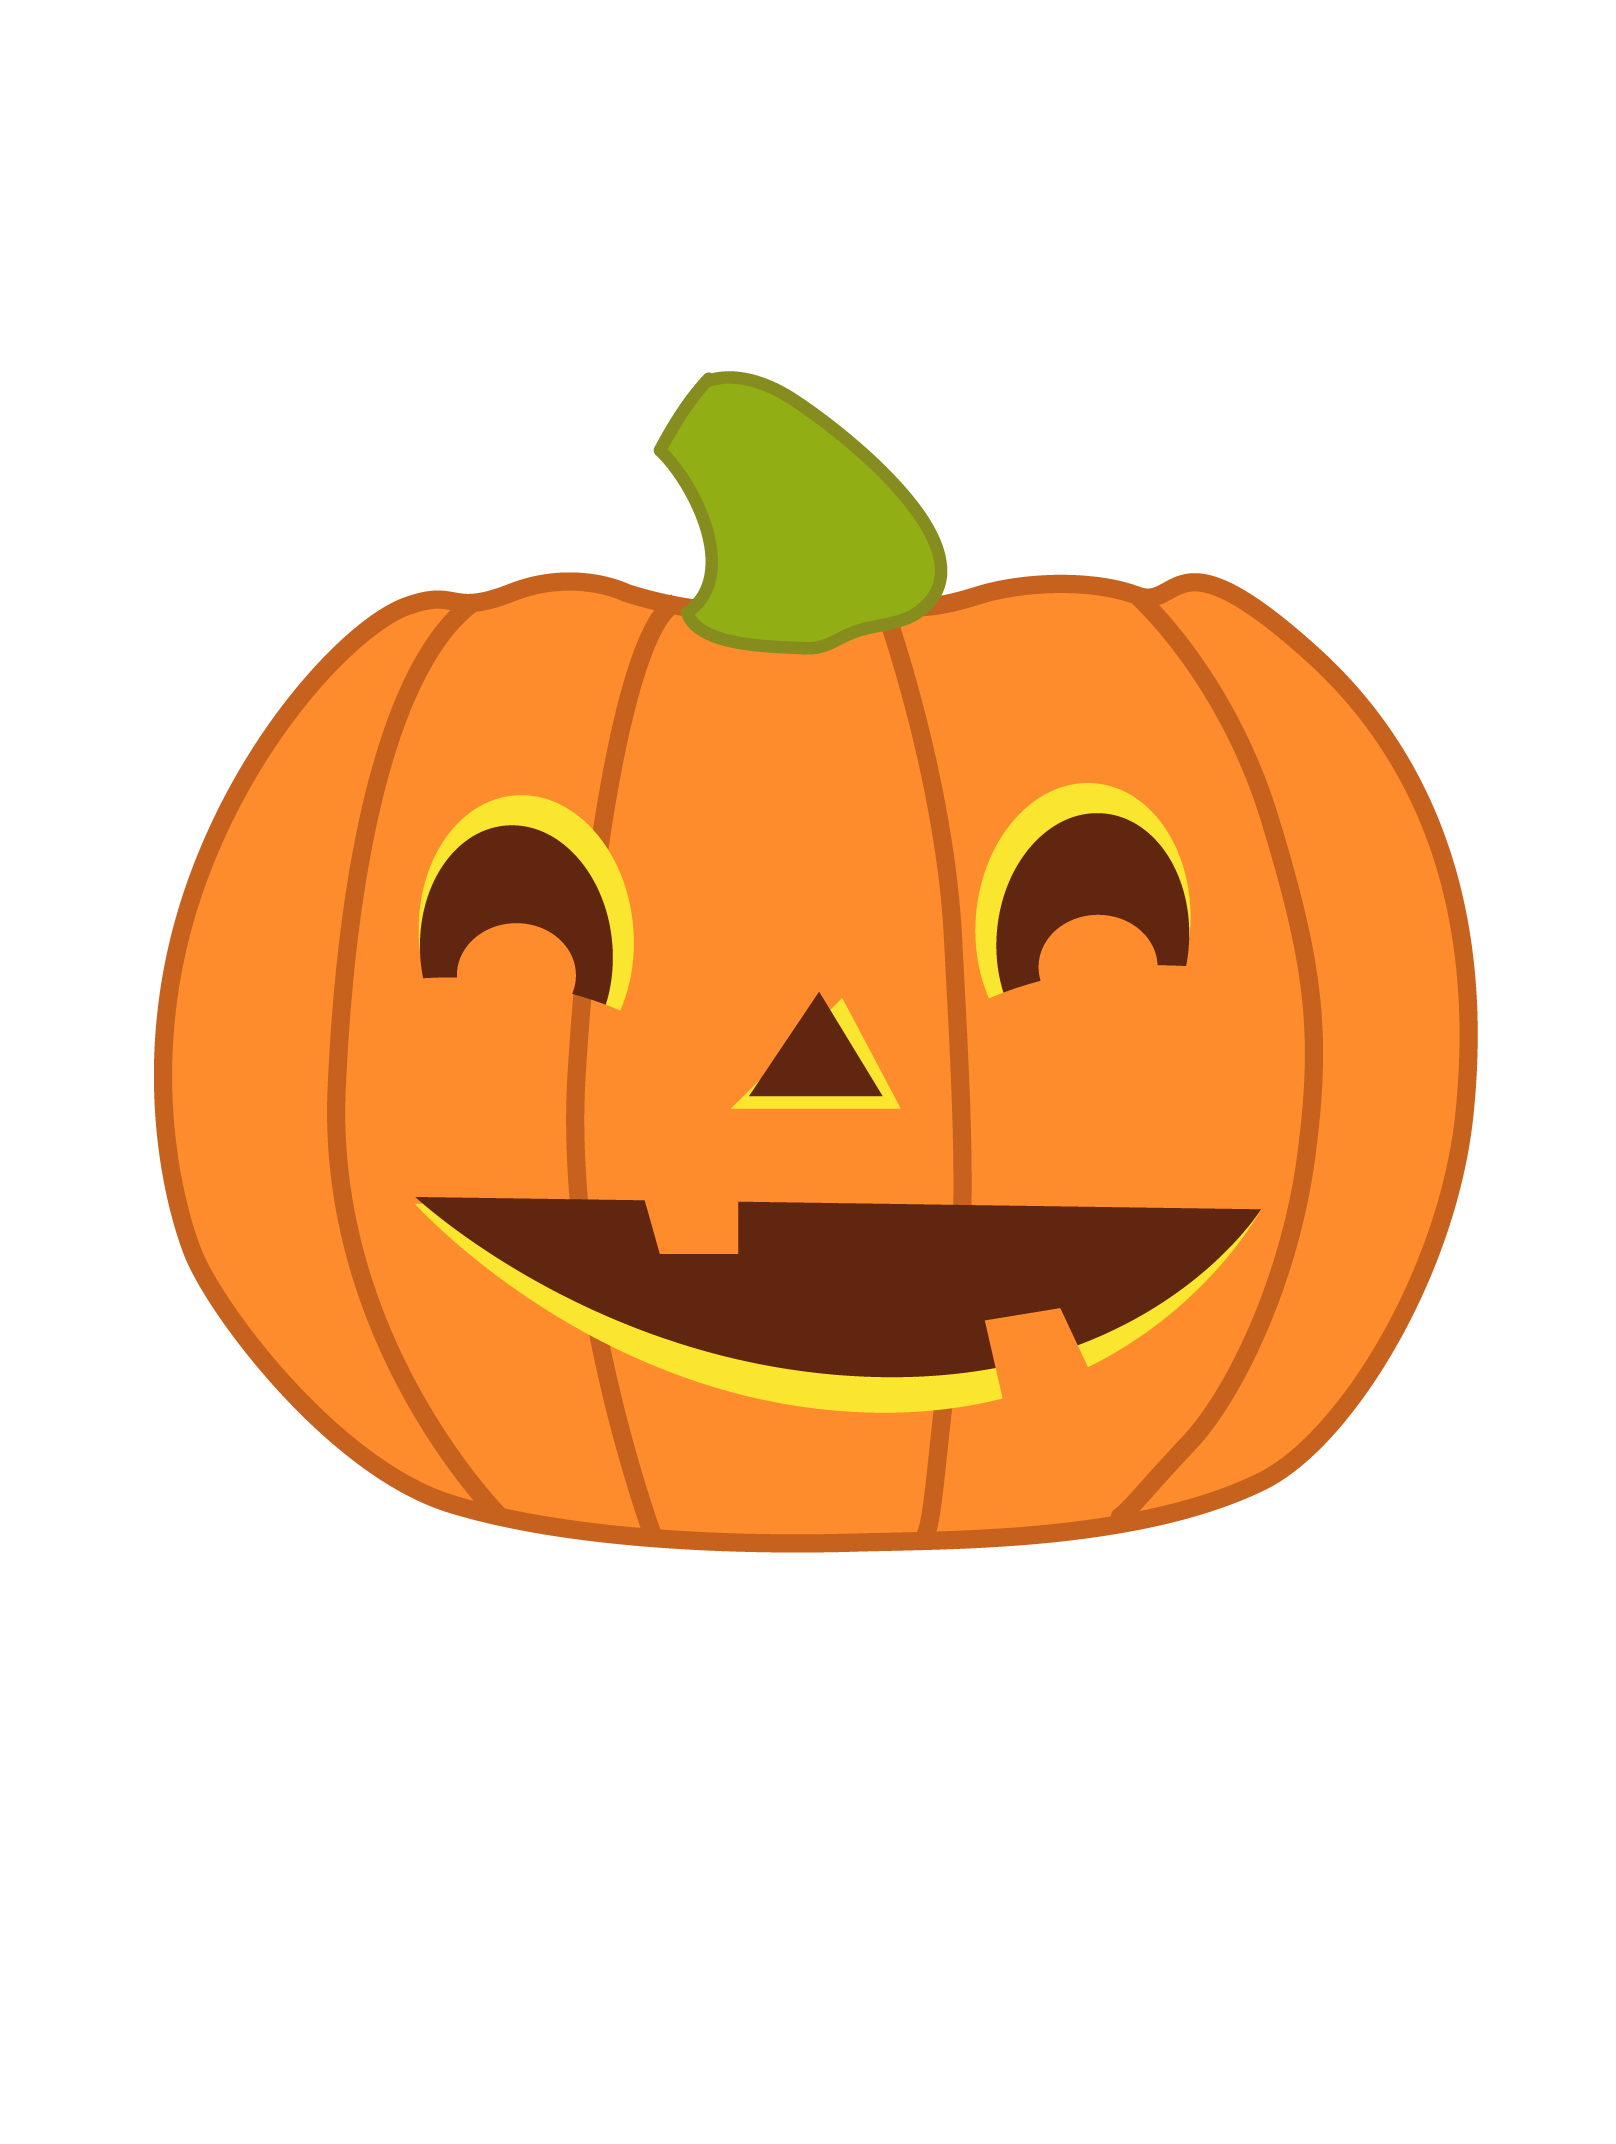 Pumpkin hanging clipart vector freeuse library cute halloween pumpkin clipart - Google Search | Library-Clipart ... vector freeuse library